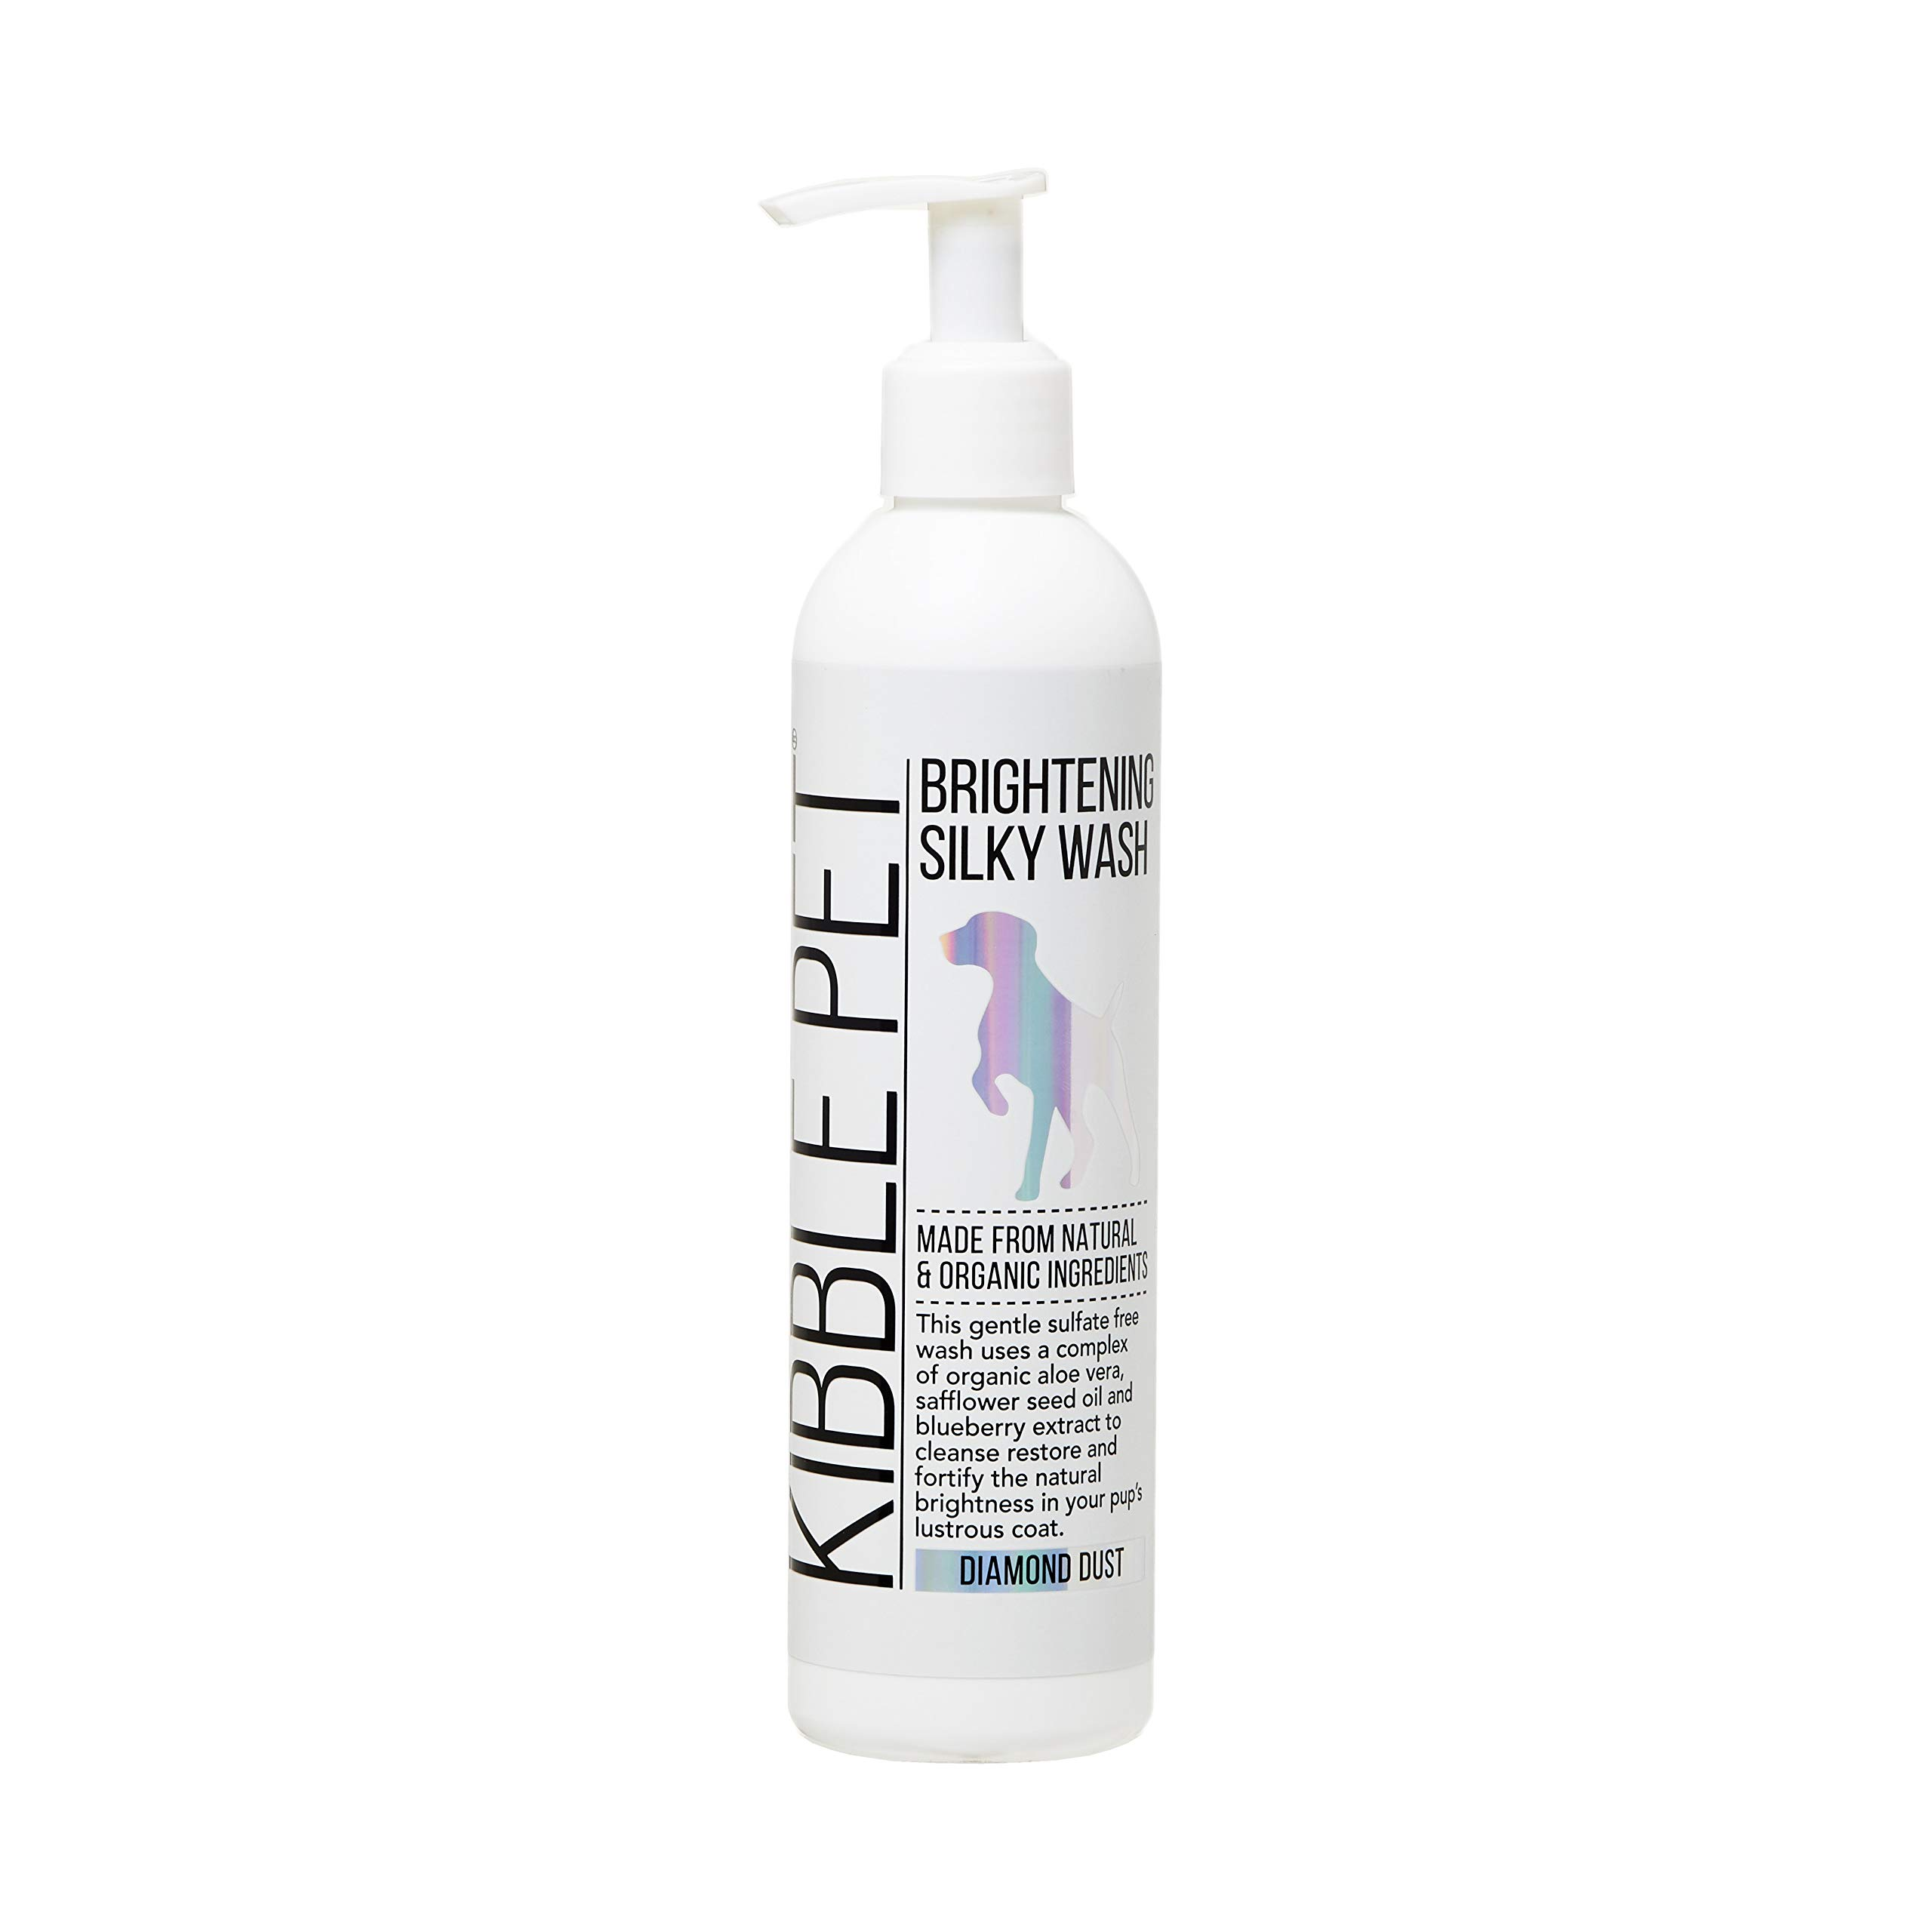 Kibble Pet Salon Quality Brightening Silky Wash Shampoo Sulfate-Free   Hypoallergenic   Made with Natural and Organic Ingredients   Made in The USA